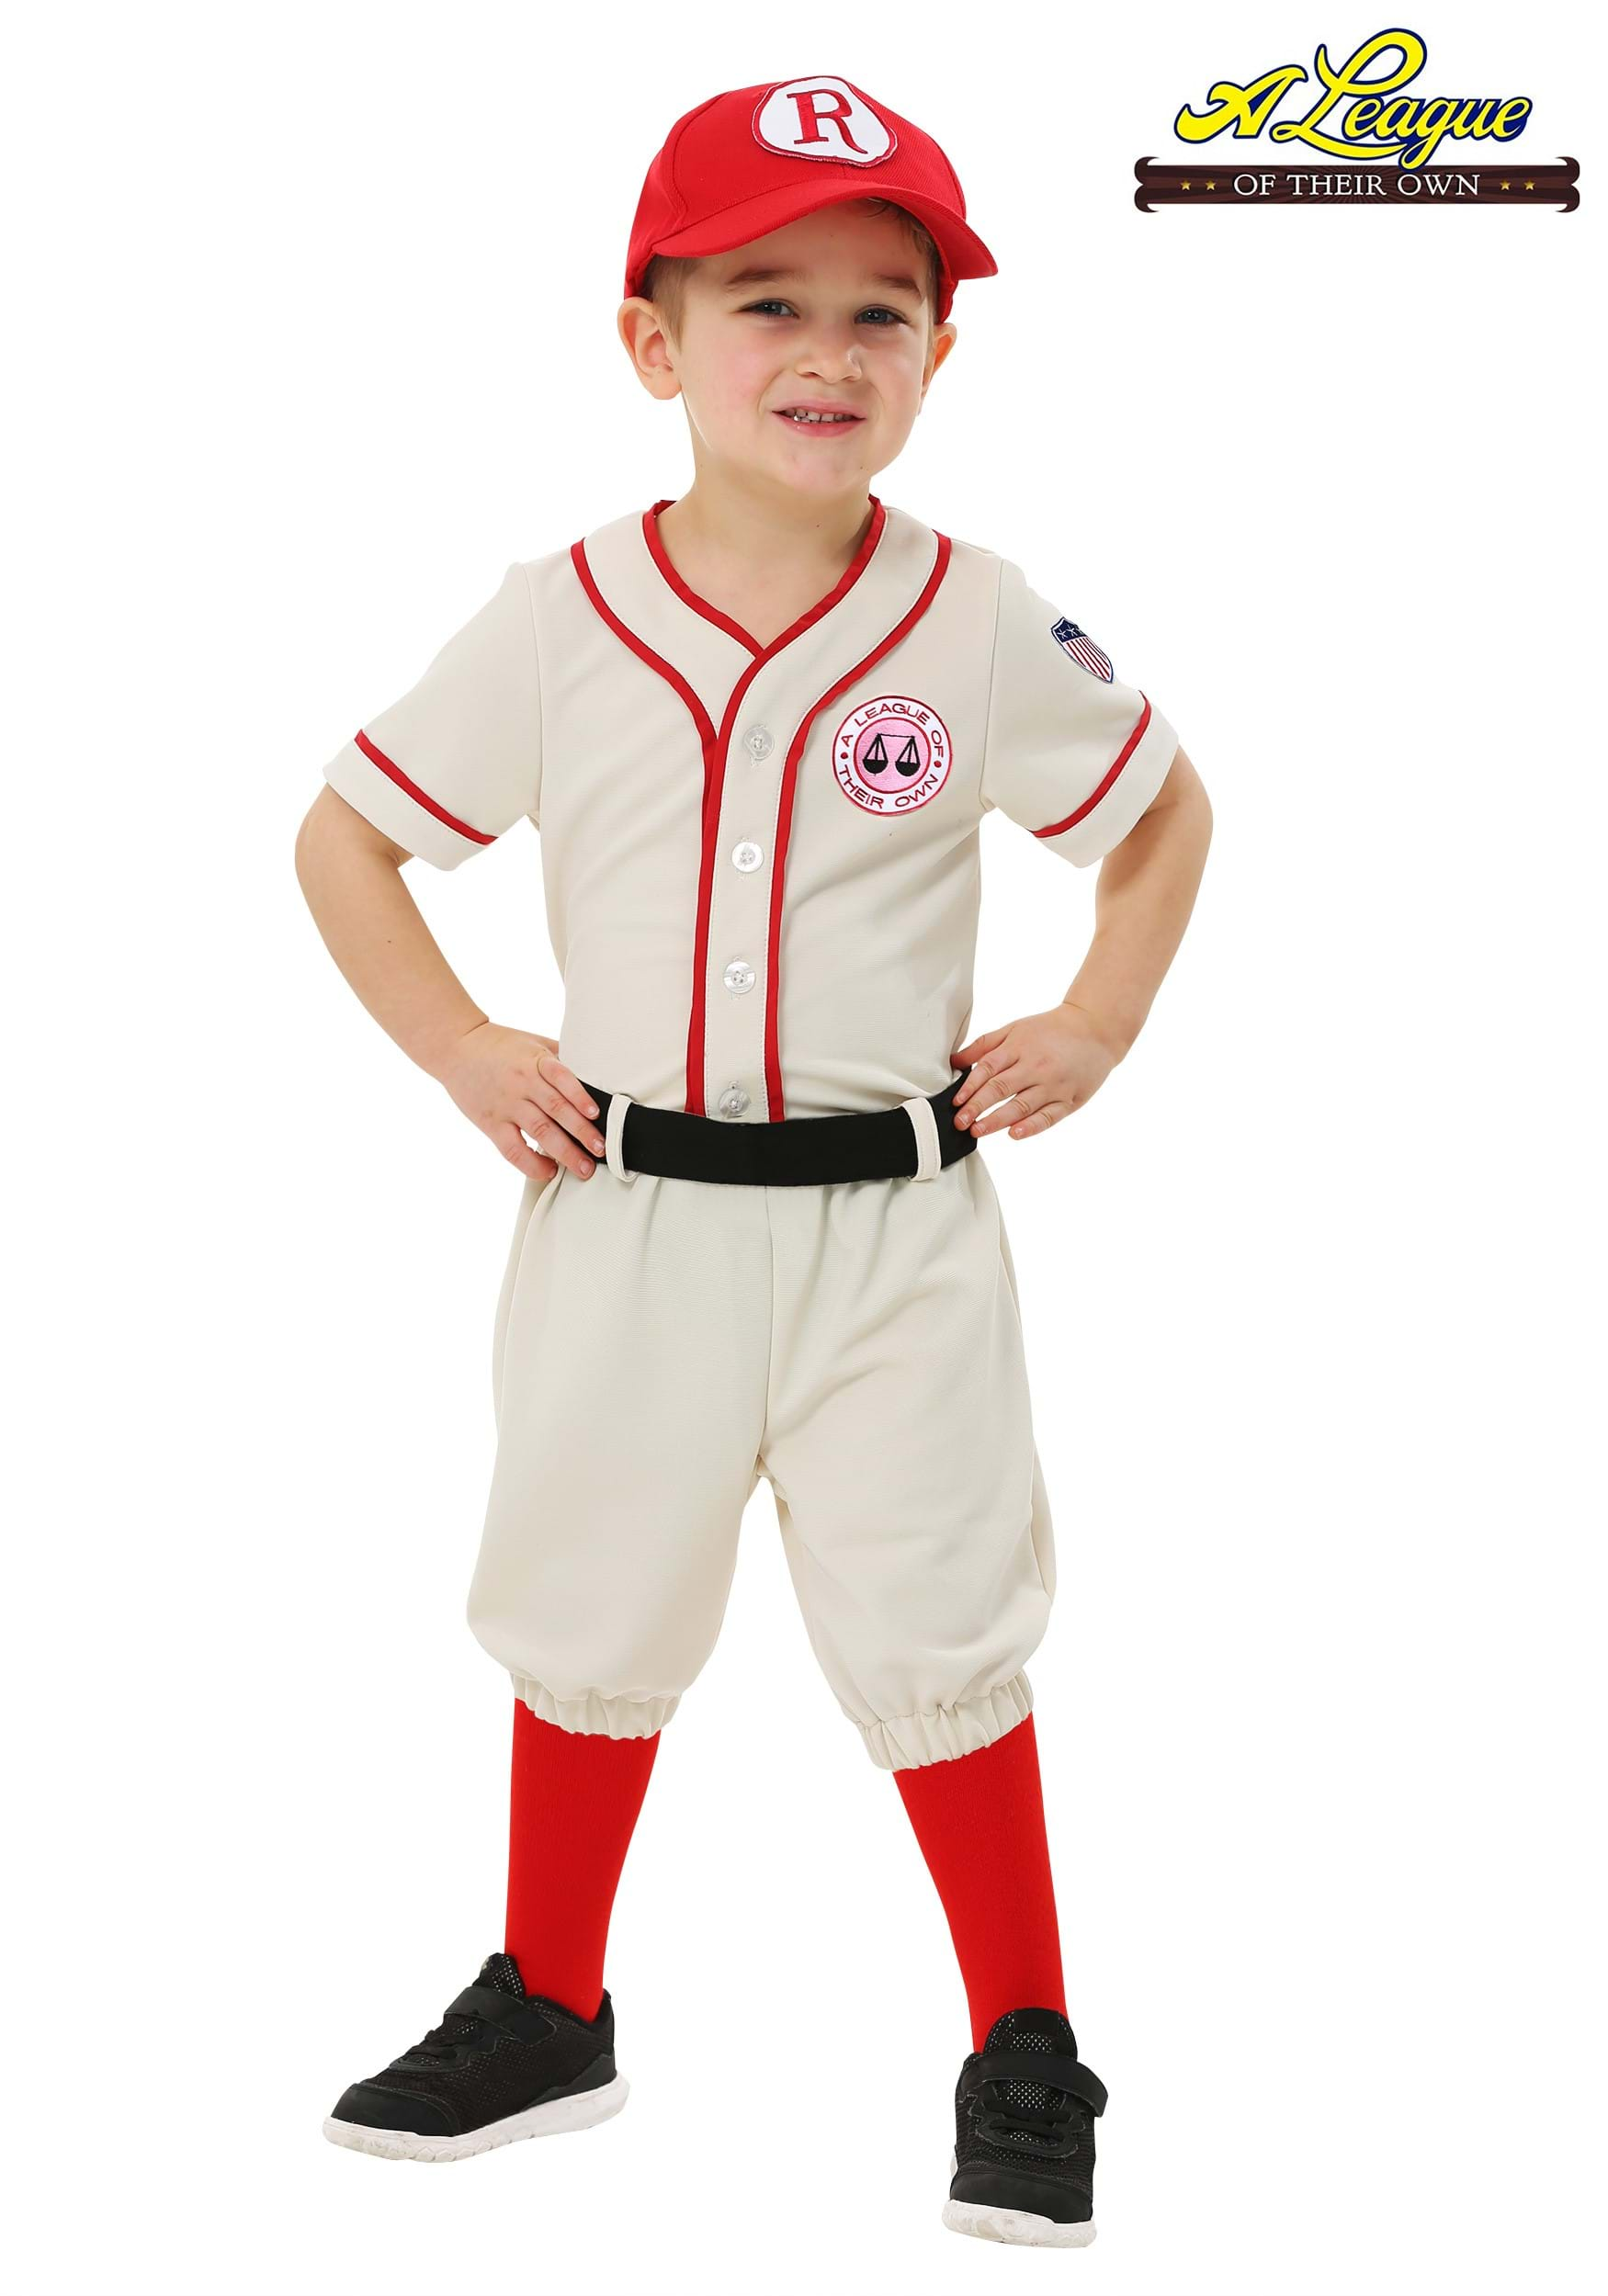 A League Of Their Own Jimmy Costume